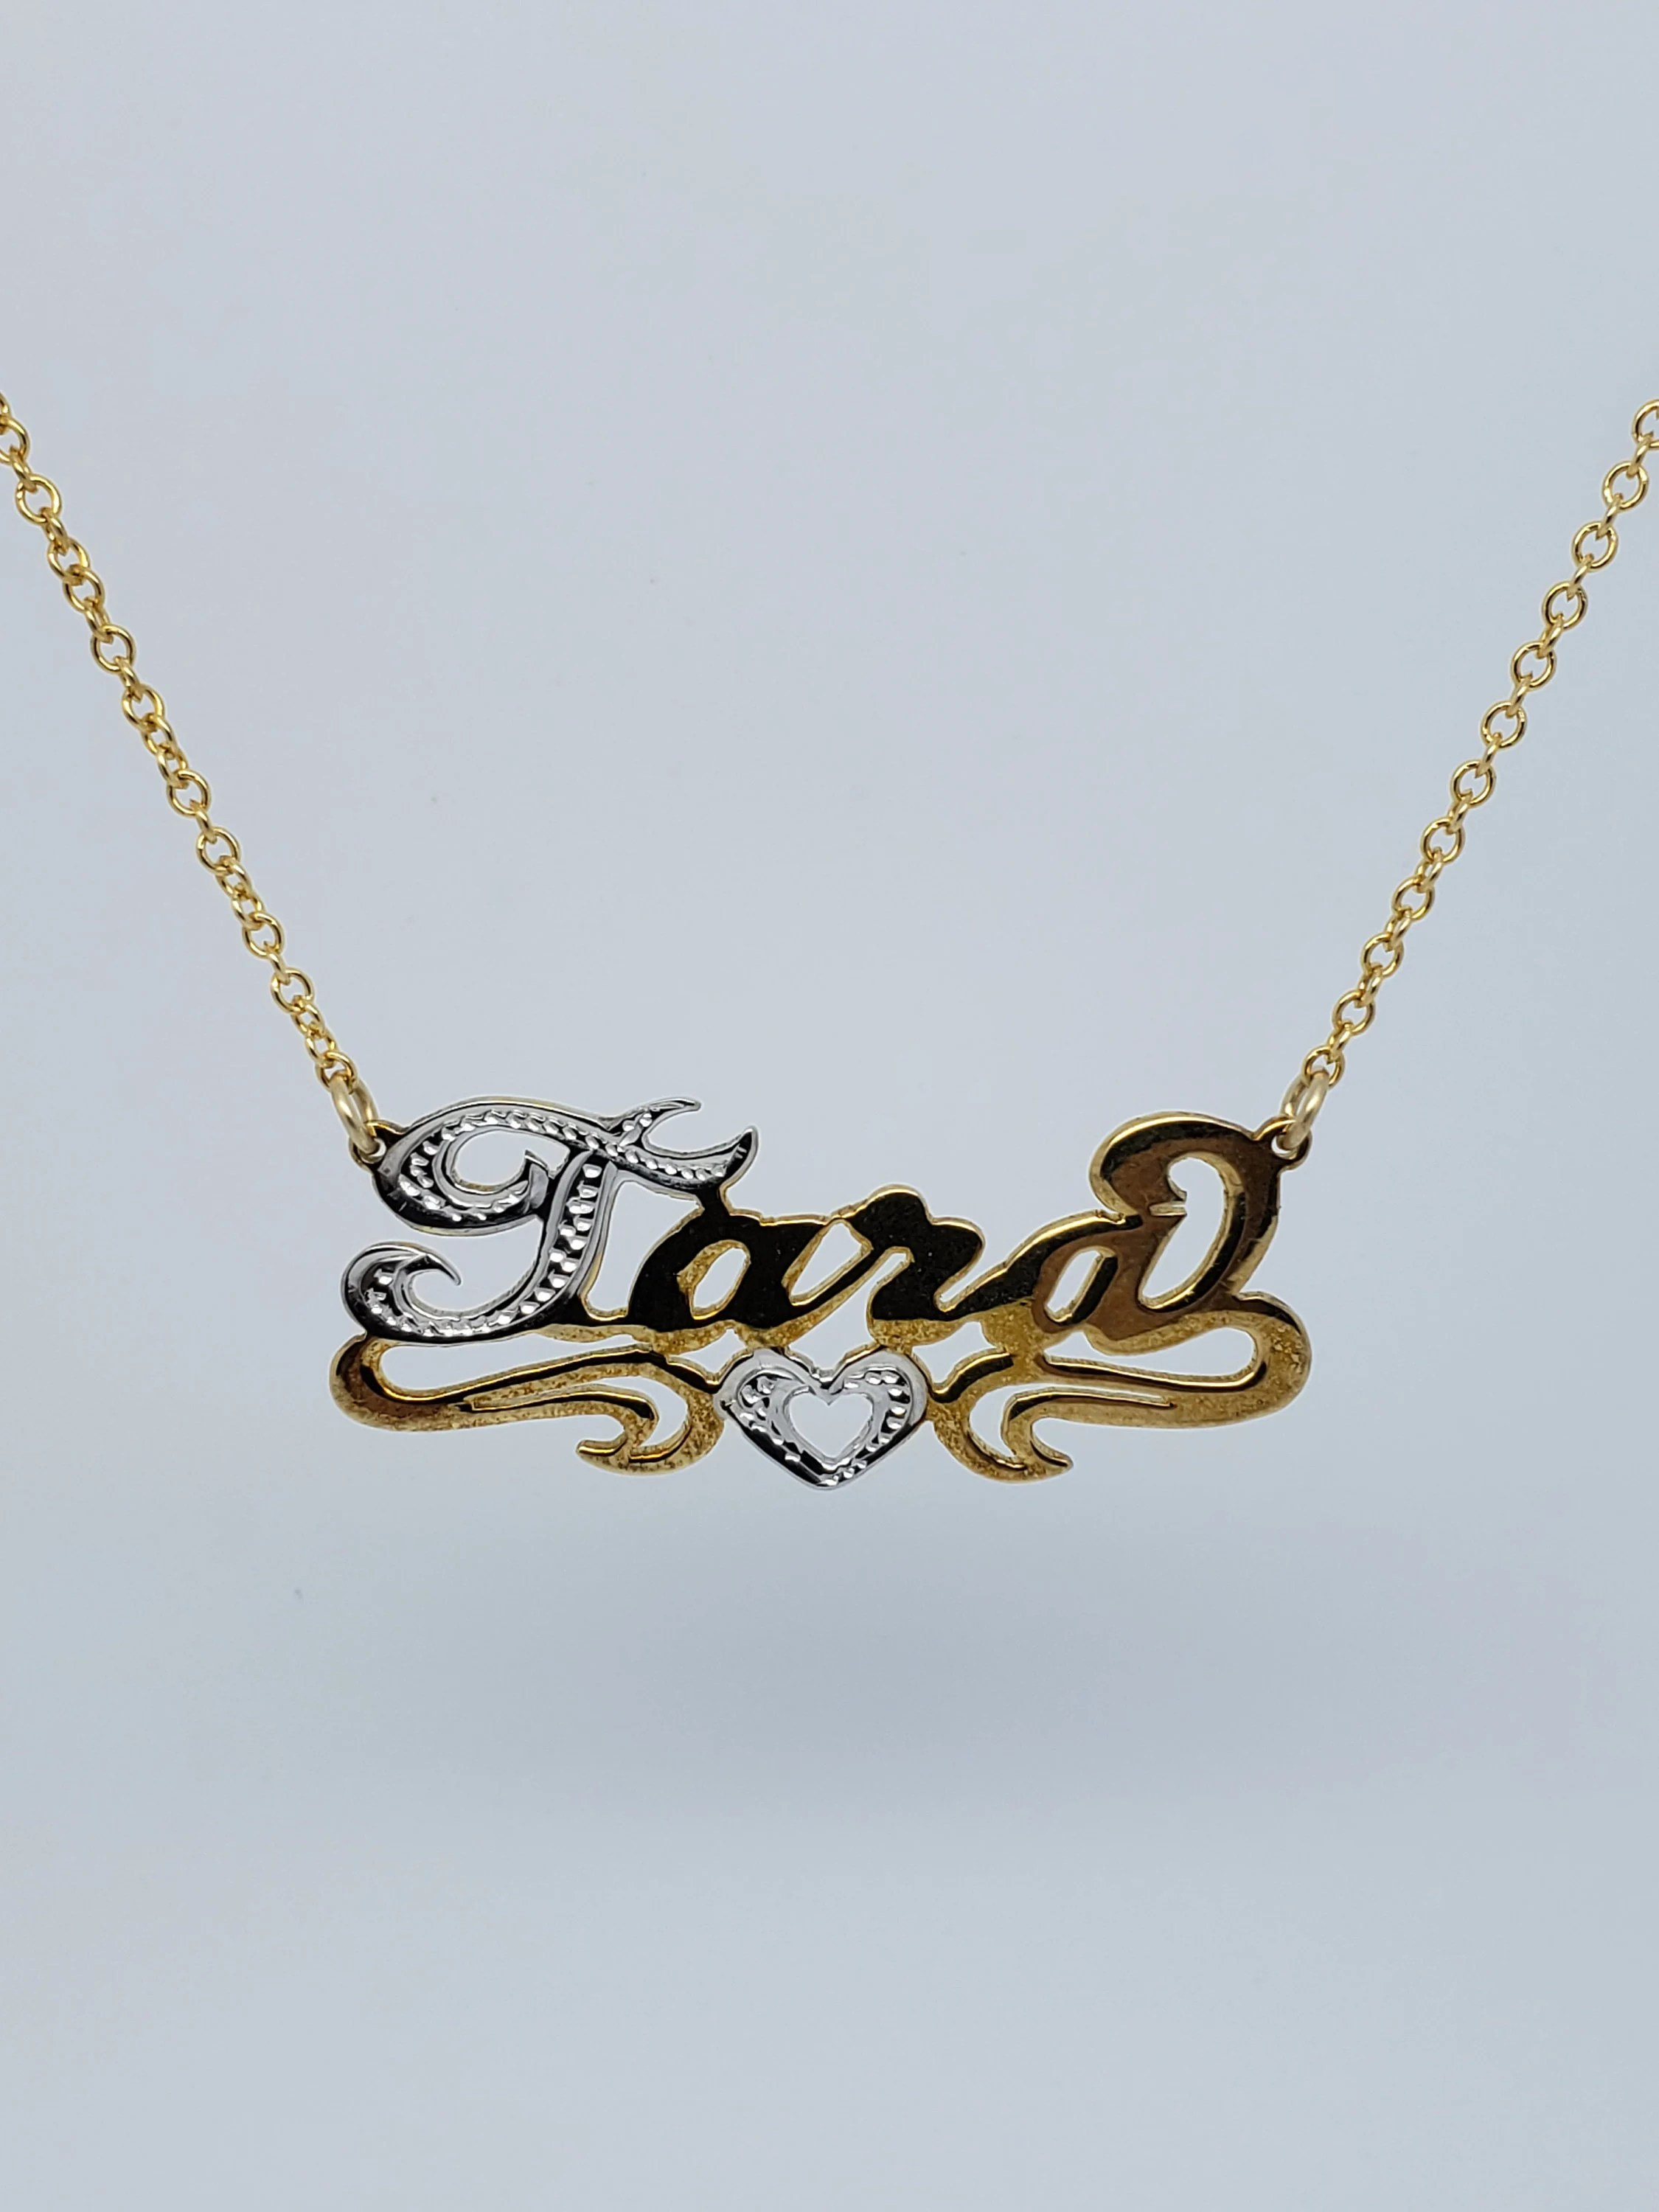 Nameplate Necklace Etsy : nameplate, necklace, Nameplate, Necklace.